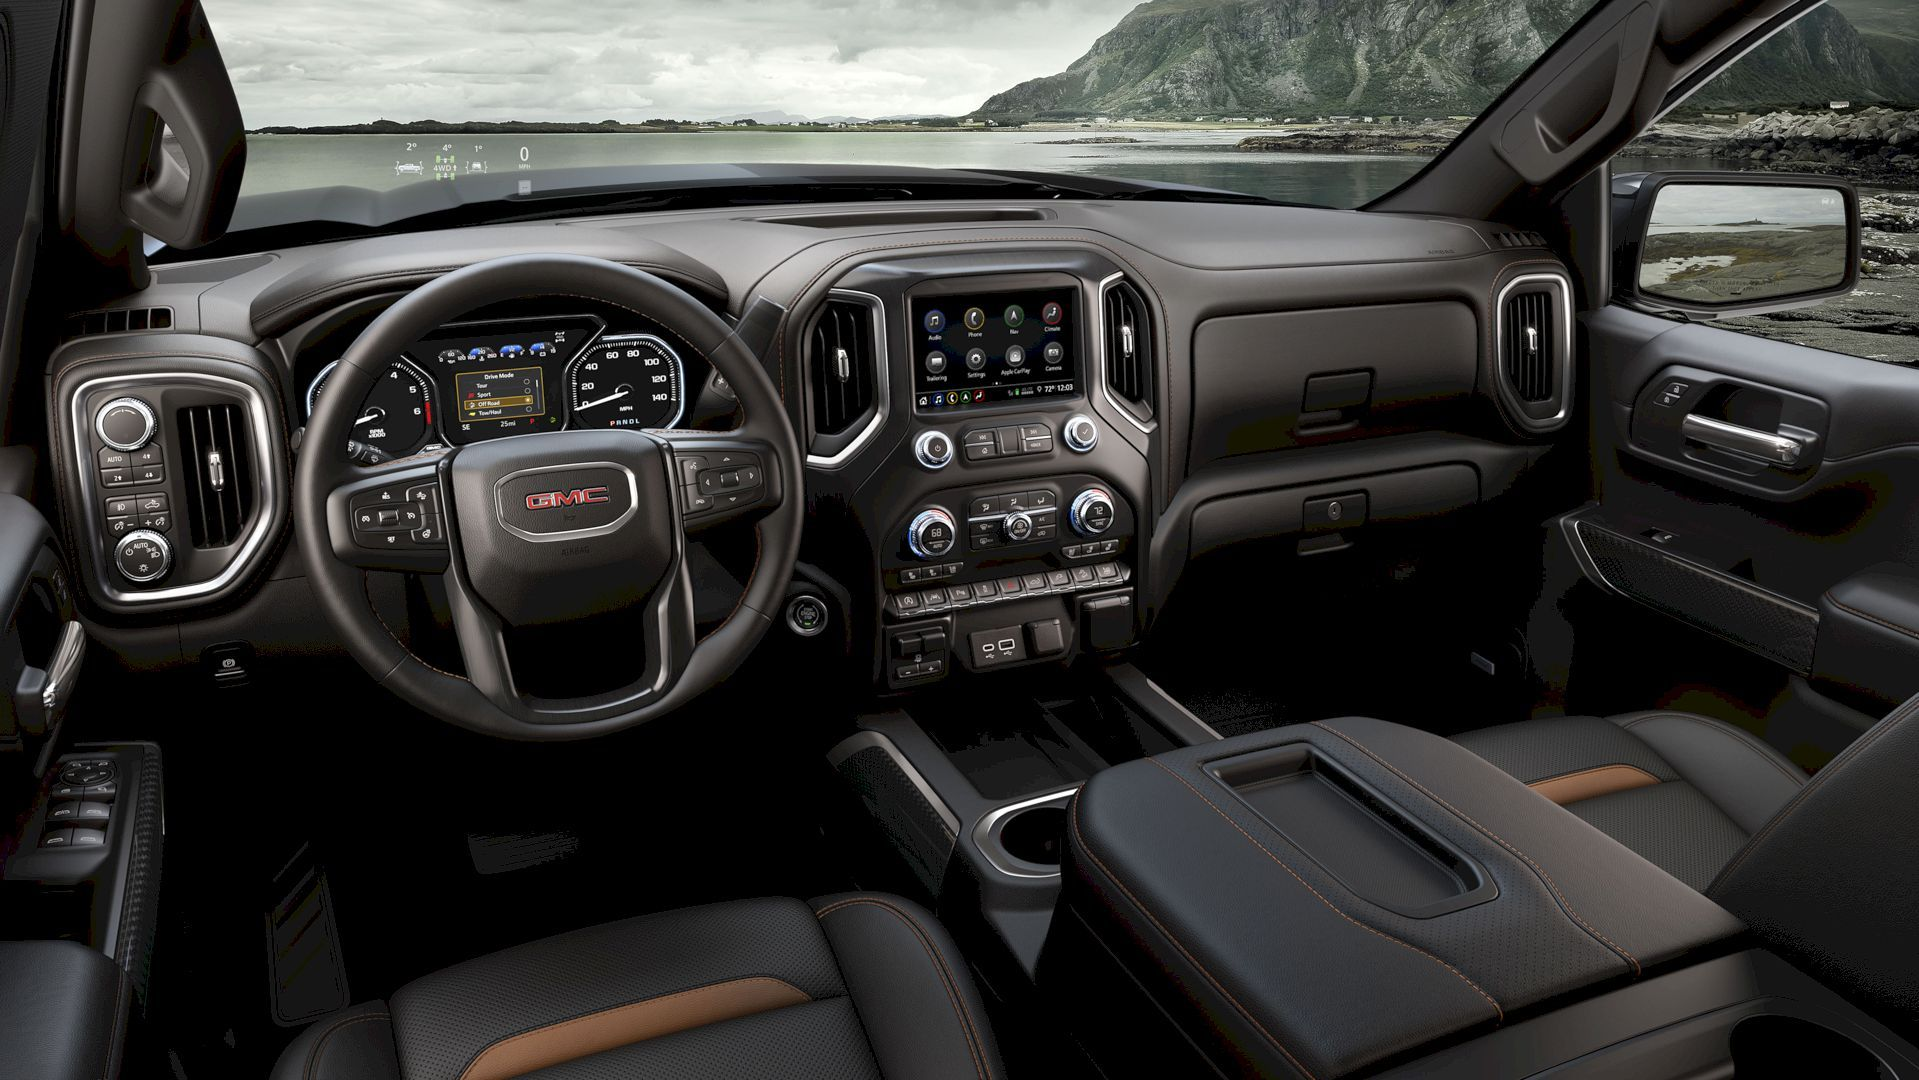 Gmc Redefines The Off Road Market Space With The All New 2019 Sierra At4 Gmc Sierra Gmc Sierra Denali Sierra Denali